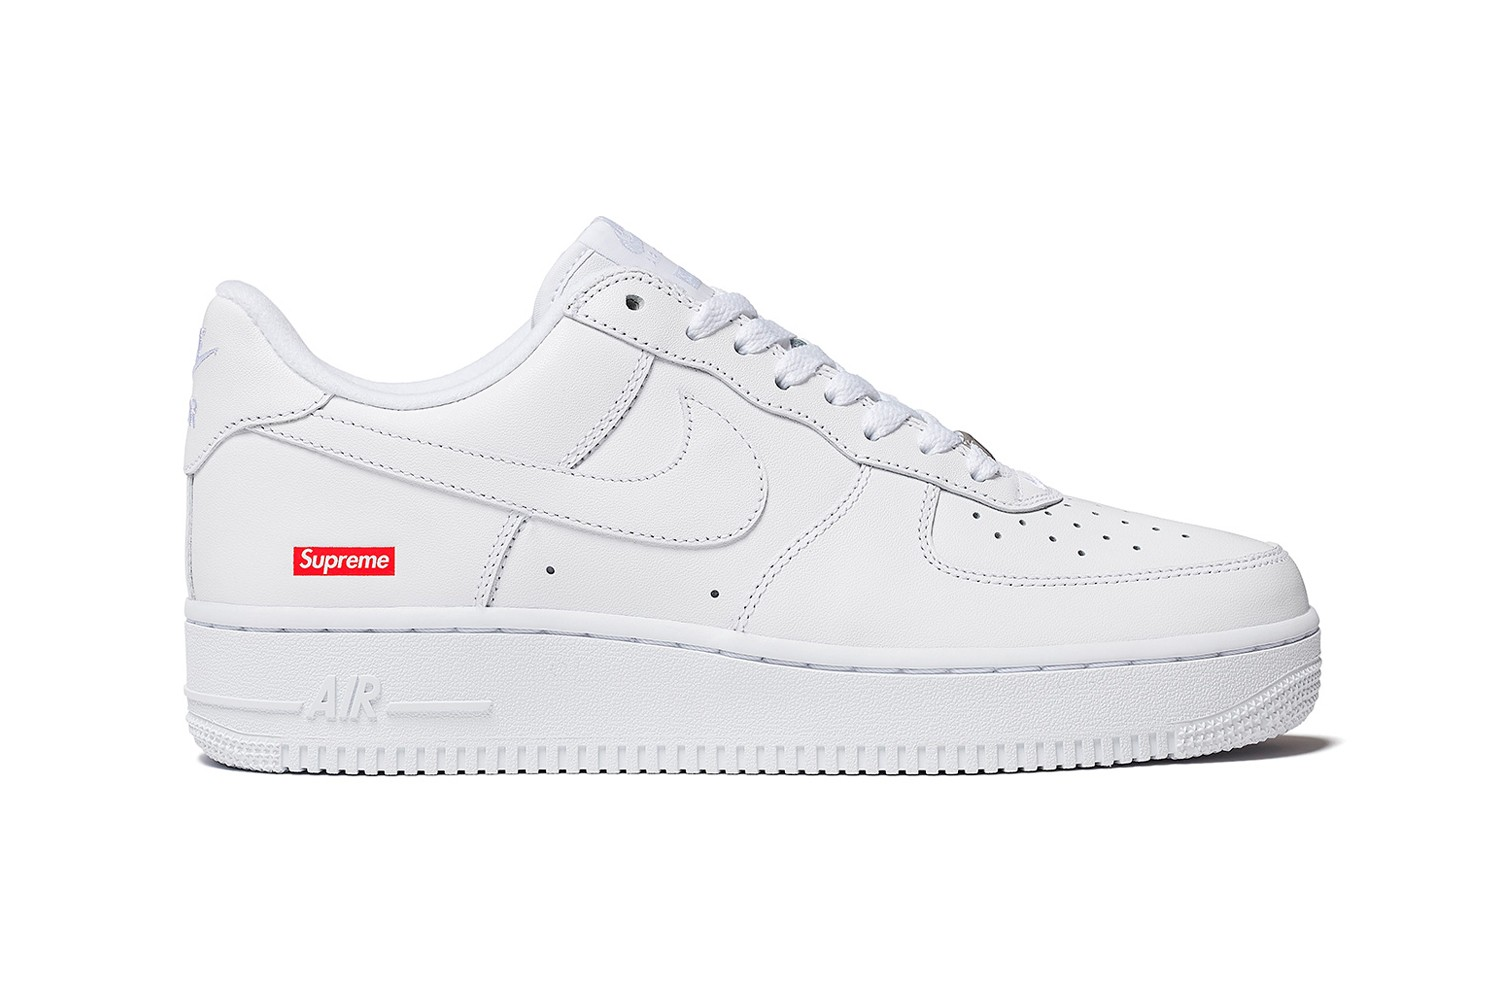 Supreme x Nike Air Force 1 Low Official